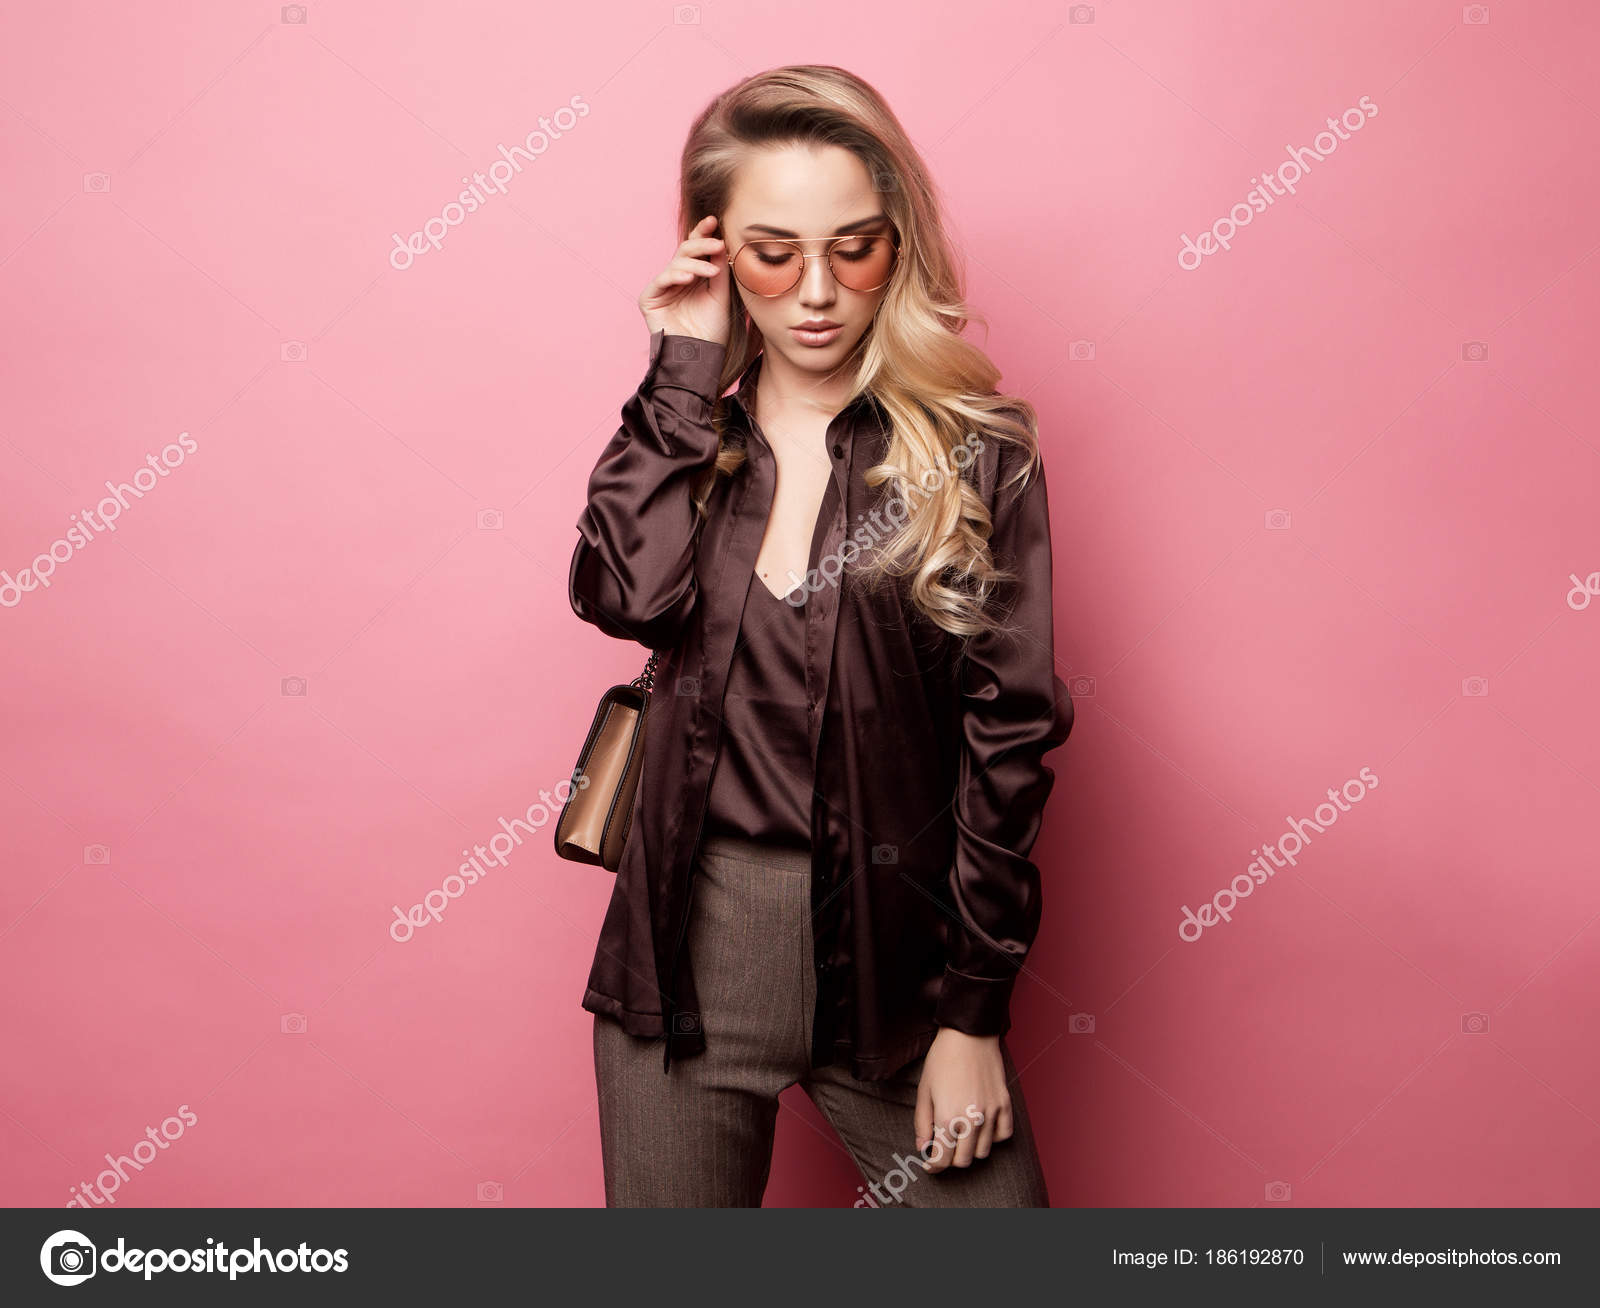 e9878c13f7402 Beautiful blond woman in a blouse and pants wearing glasses